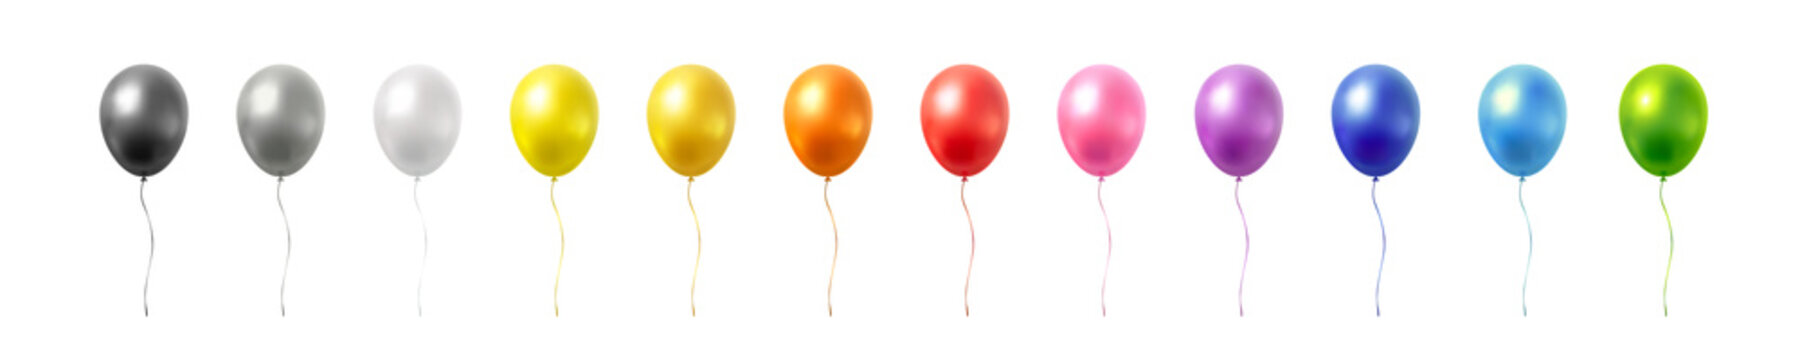 Balloon set isolated on white background. Vector realistic gold, silver, golden colorful and black festive 3d helium balloons template for anniversary, birthday party design